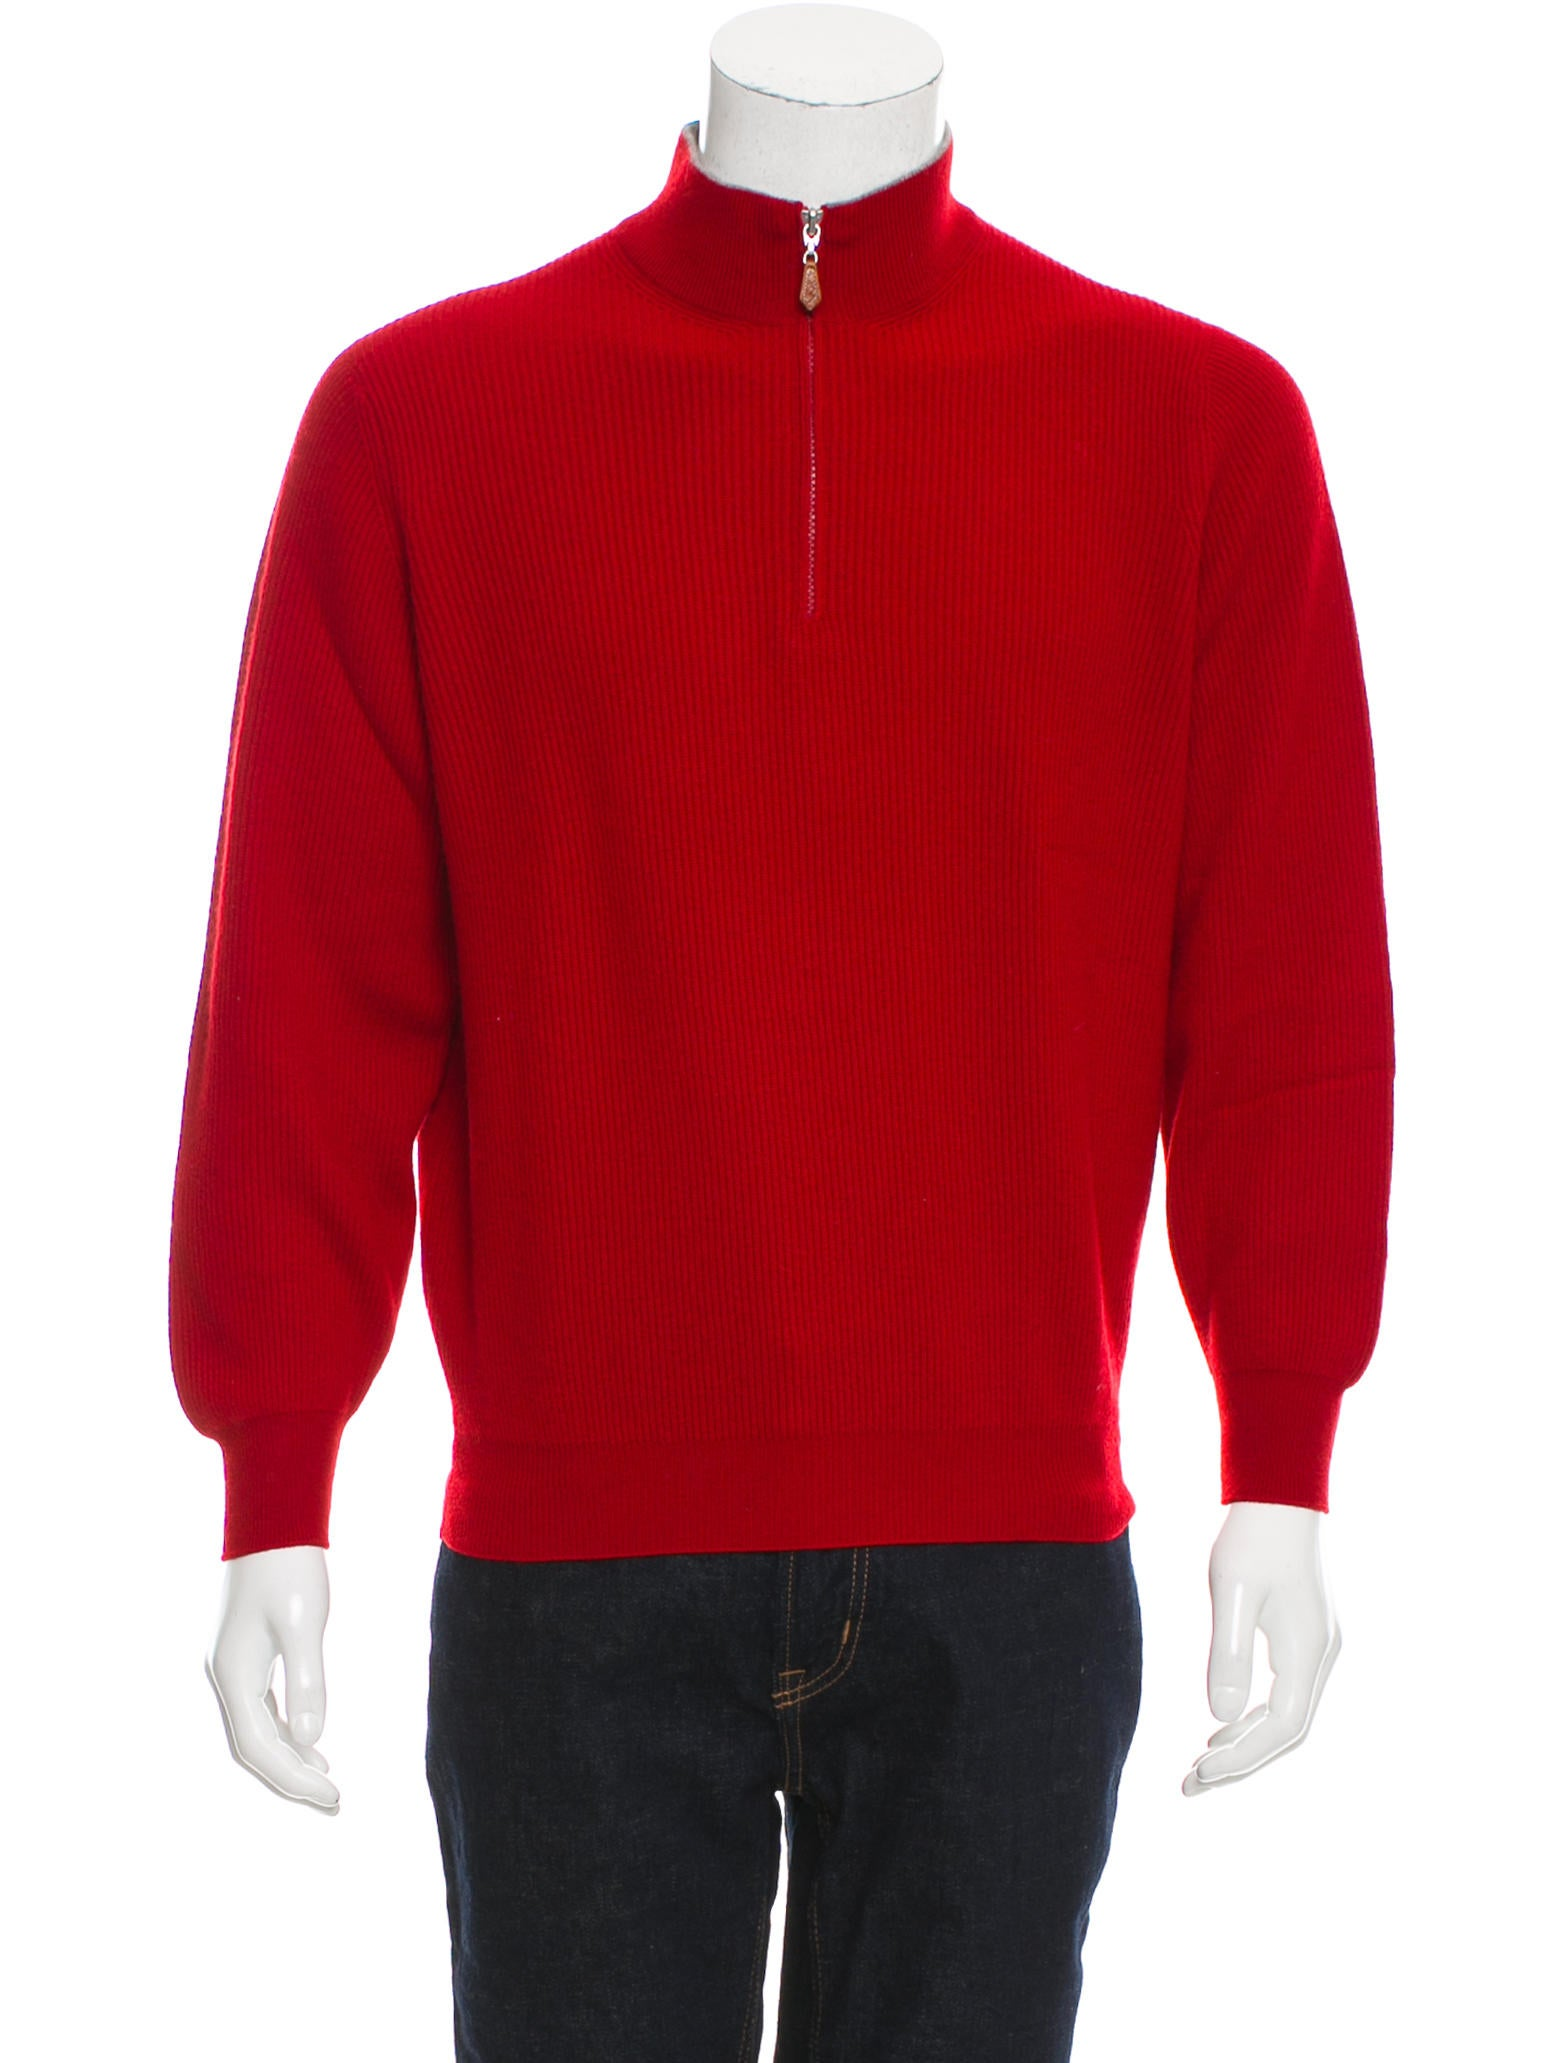 Brunello Cucinelli Cashmere Half-Zip Sweater - Clothing - BRU47532 | The RealReal